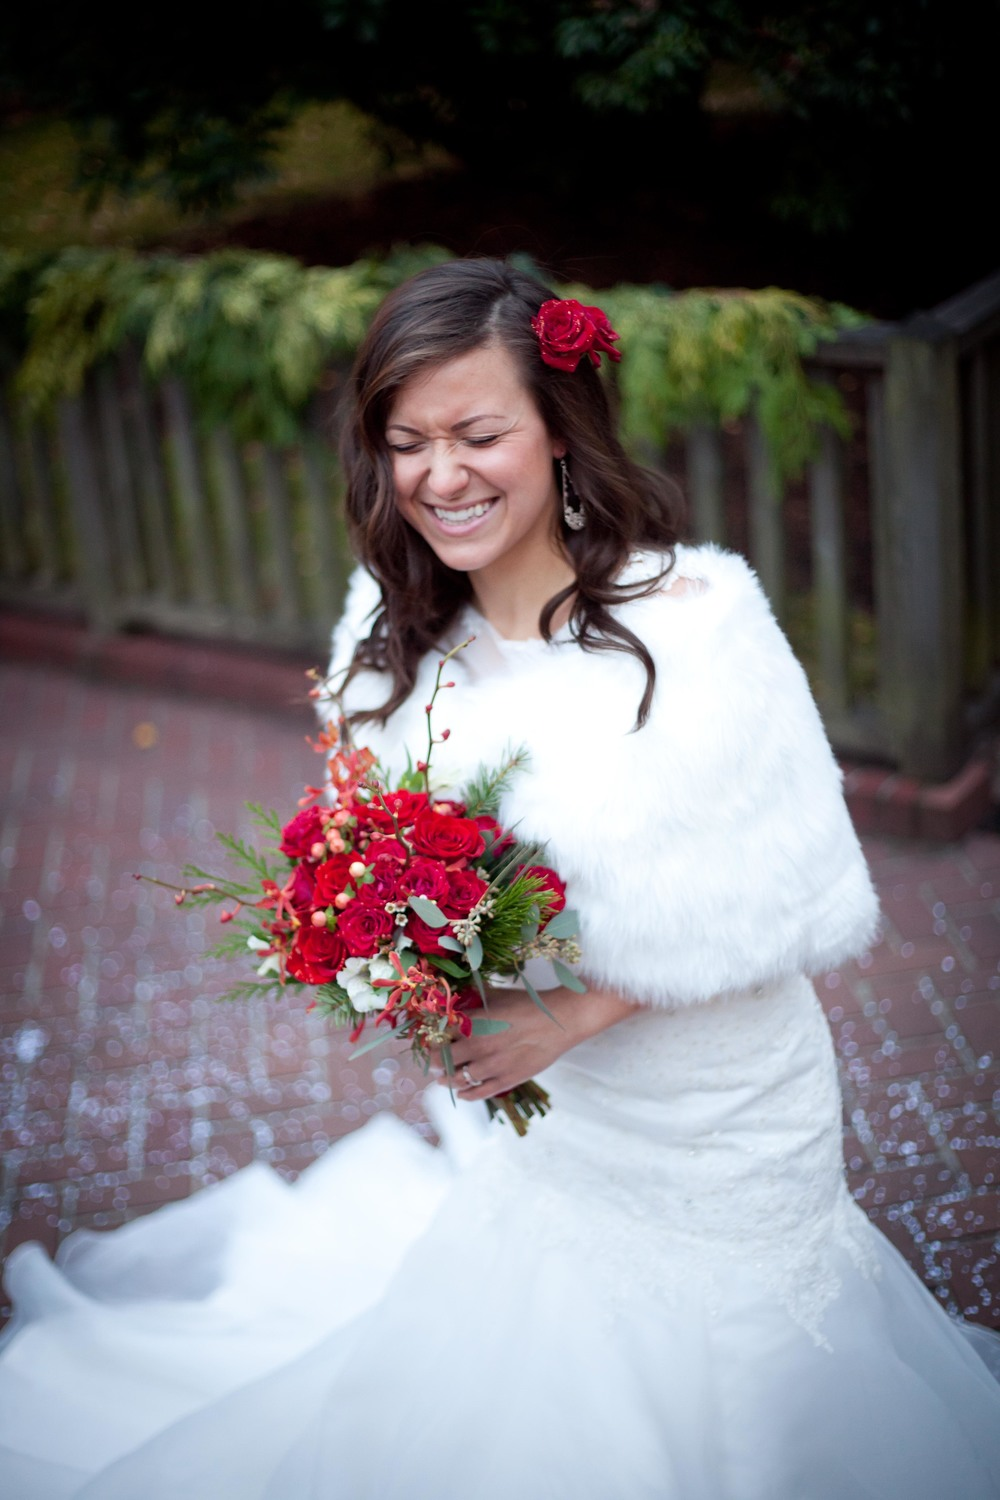 WinterWedding2014-1274.jpg